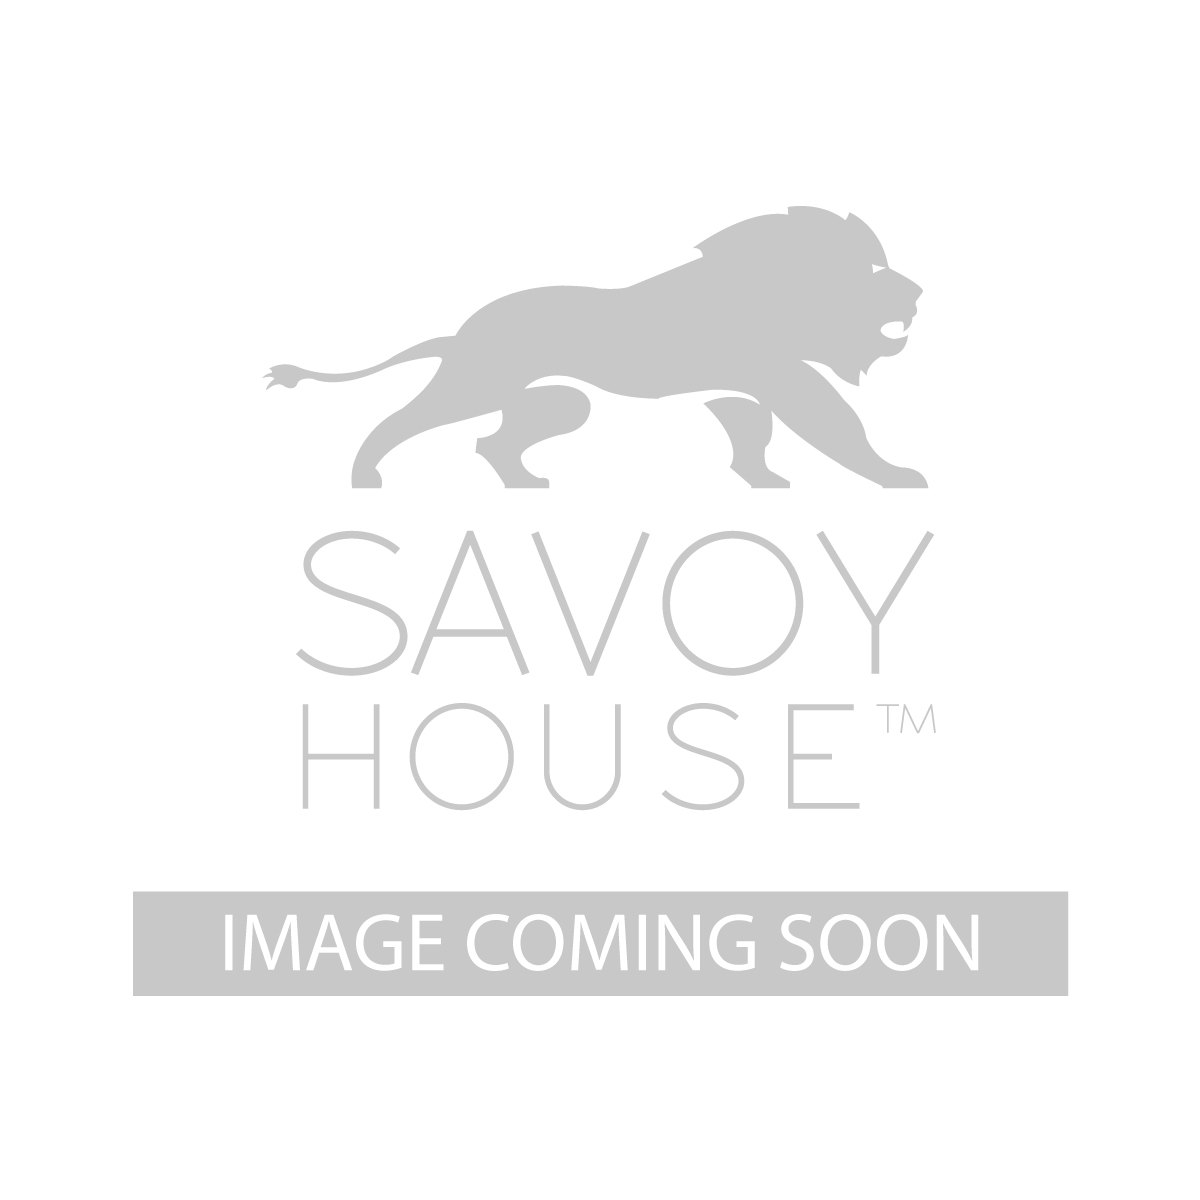 56 5075 5wa 13 buckenham 5 blade ceiling fan by savoy house buckenham 5 blade ceiling fan aloadofball Image collections